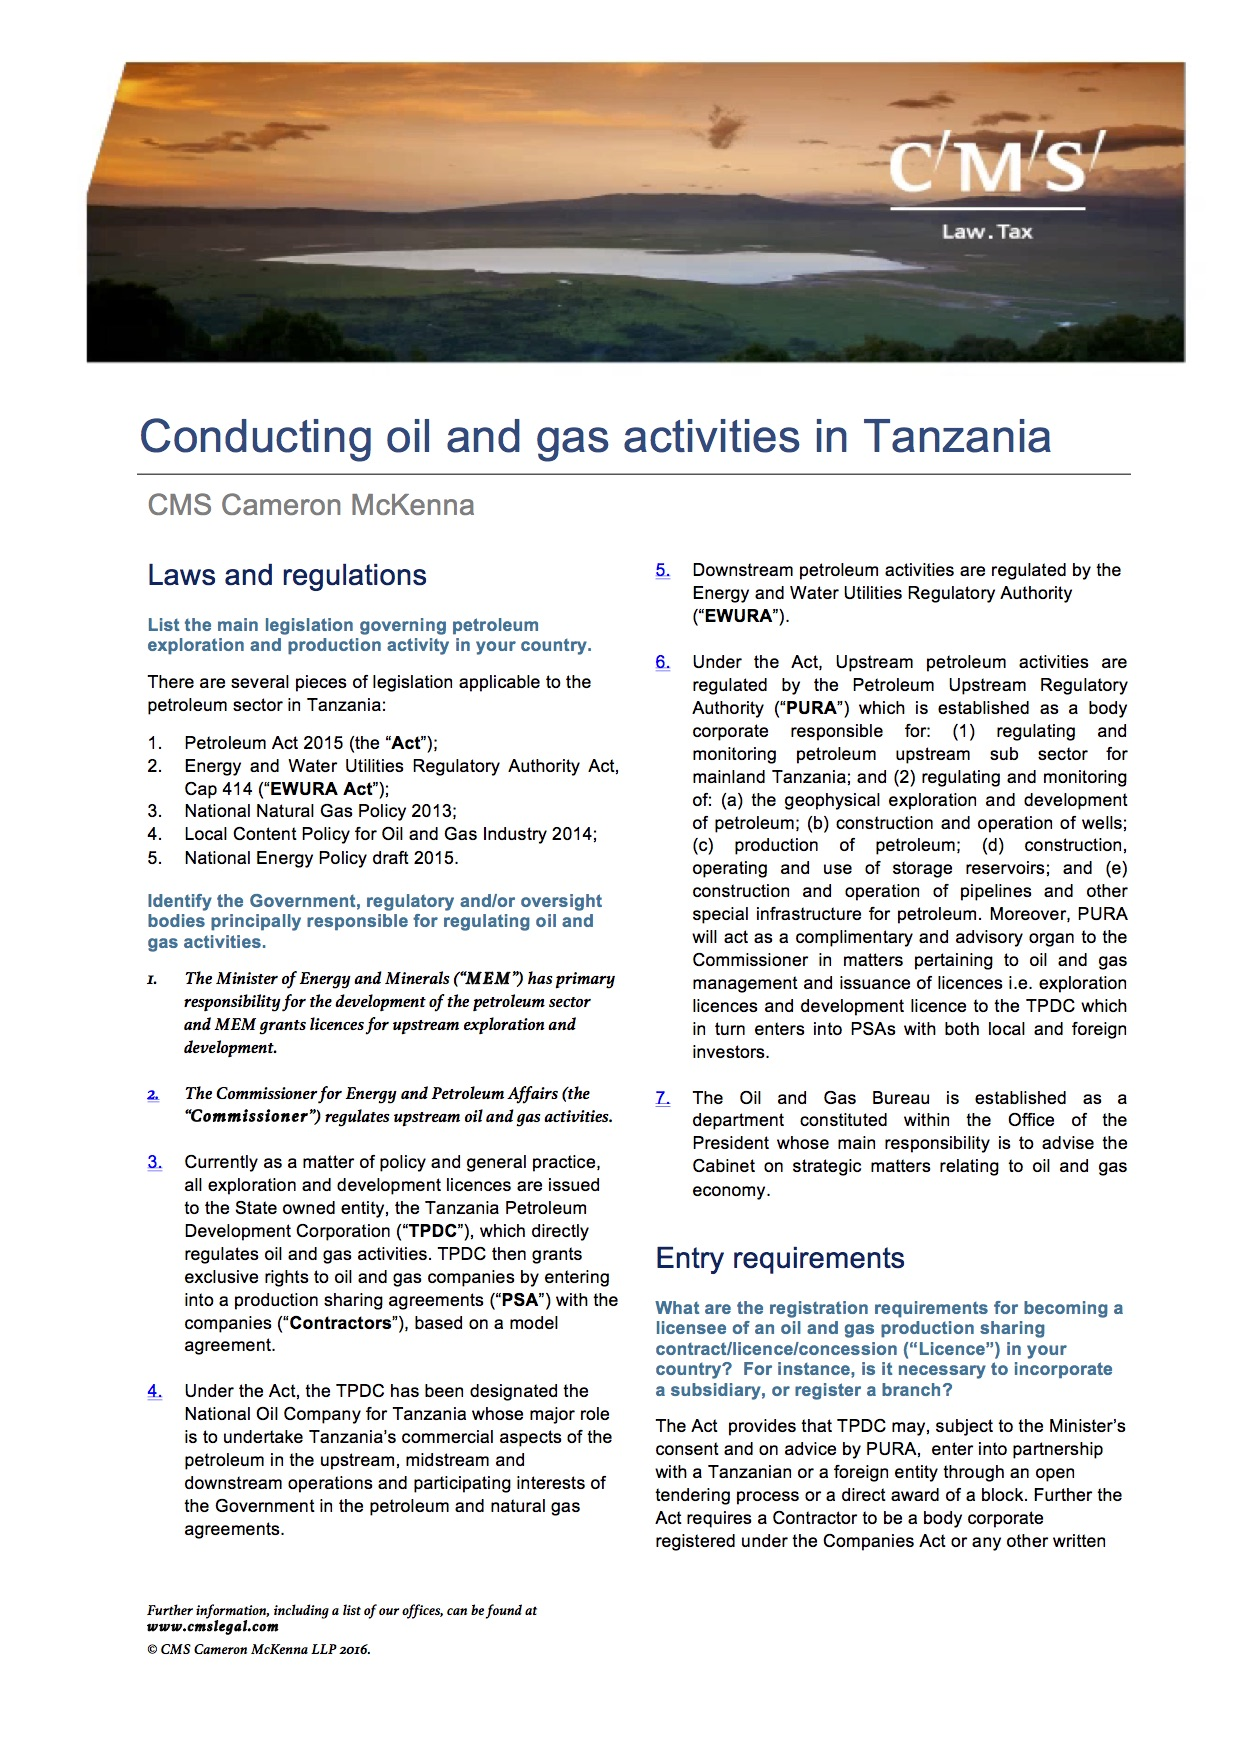 conducting-oil-and-gas-activities-in-tanzania213066661_1-velma-comments-19-aug-2016